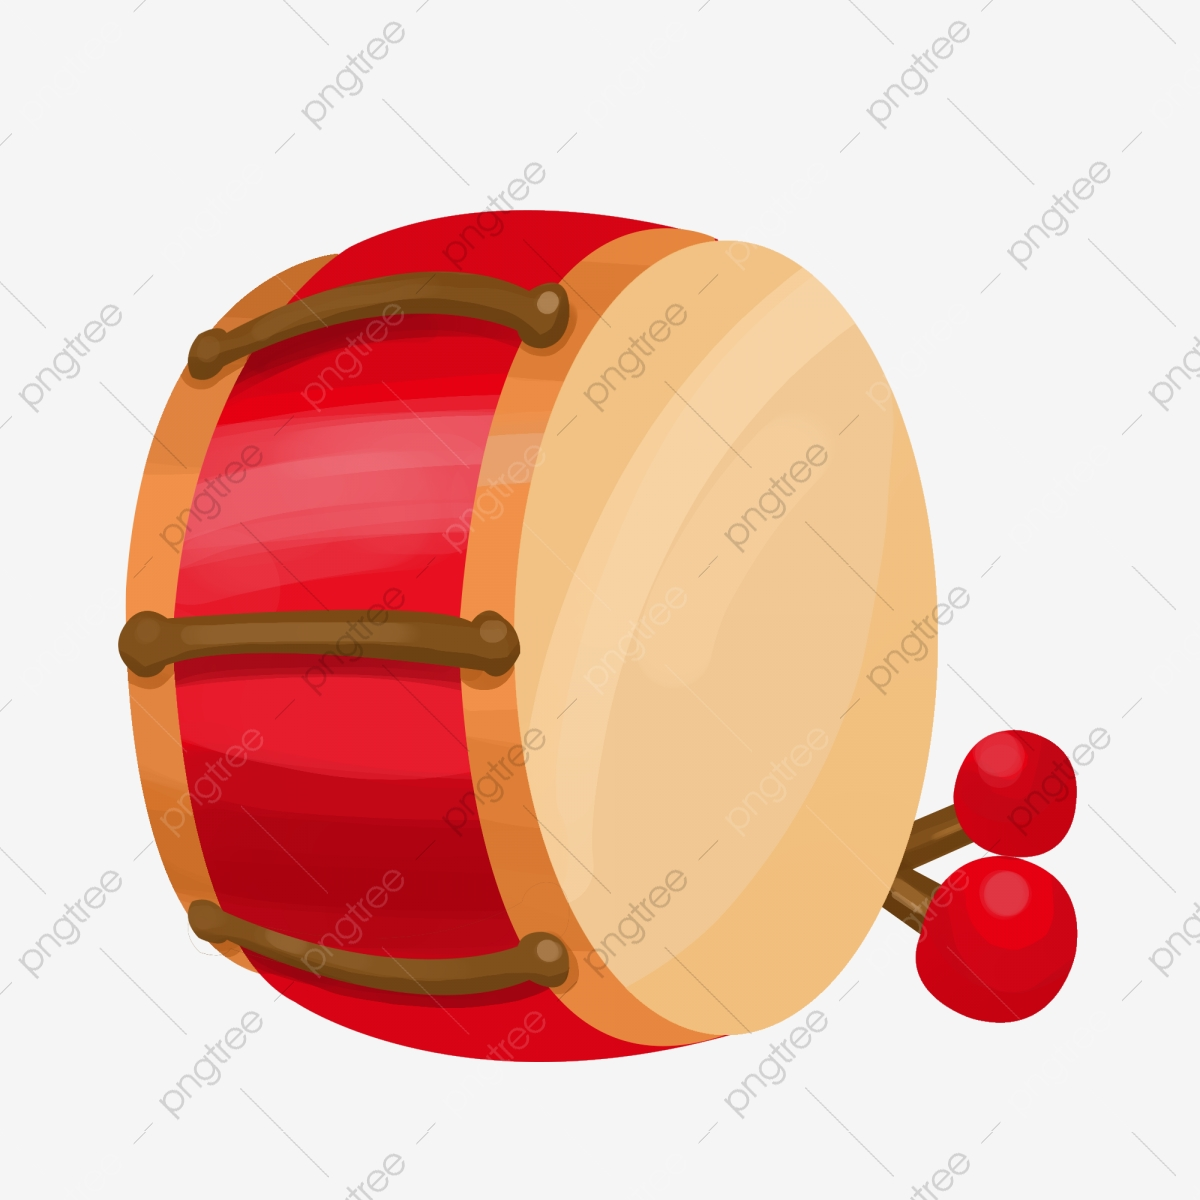 Drumming Musical Instruments Music Drum Png Transparent Clipart